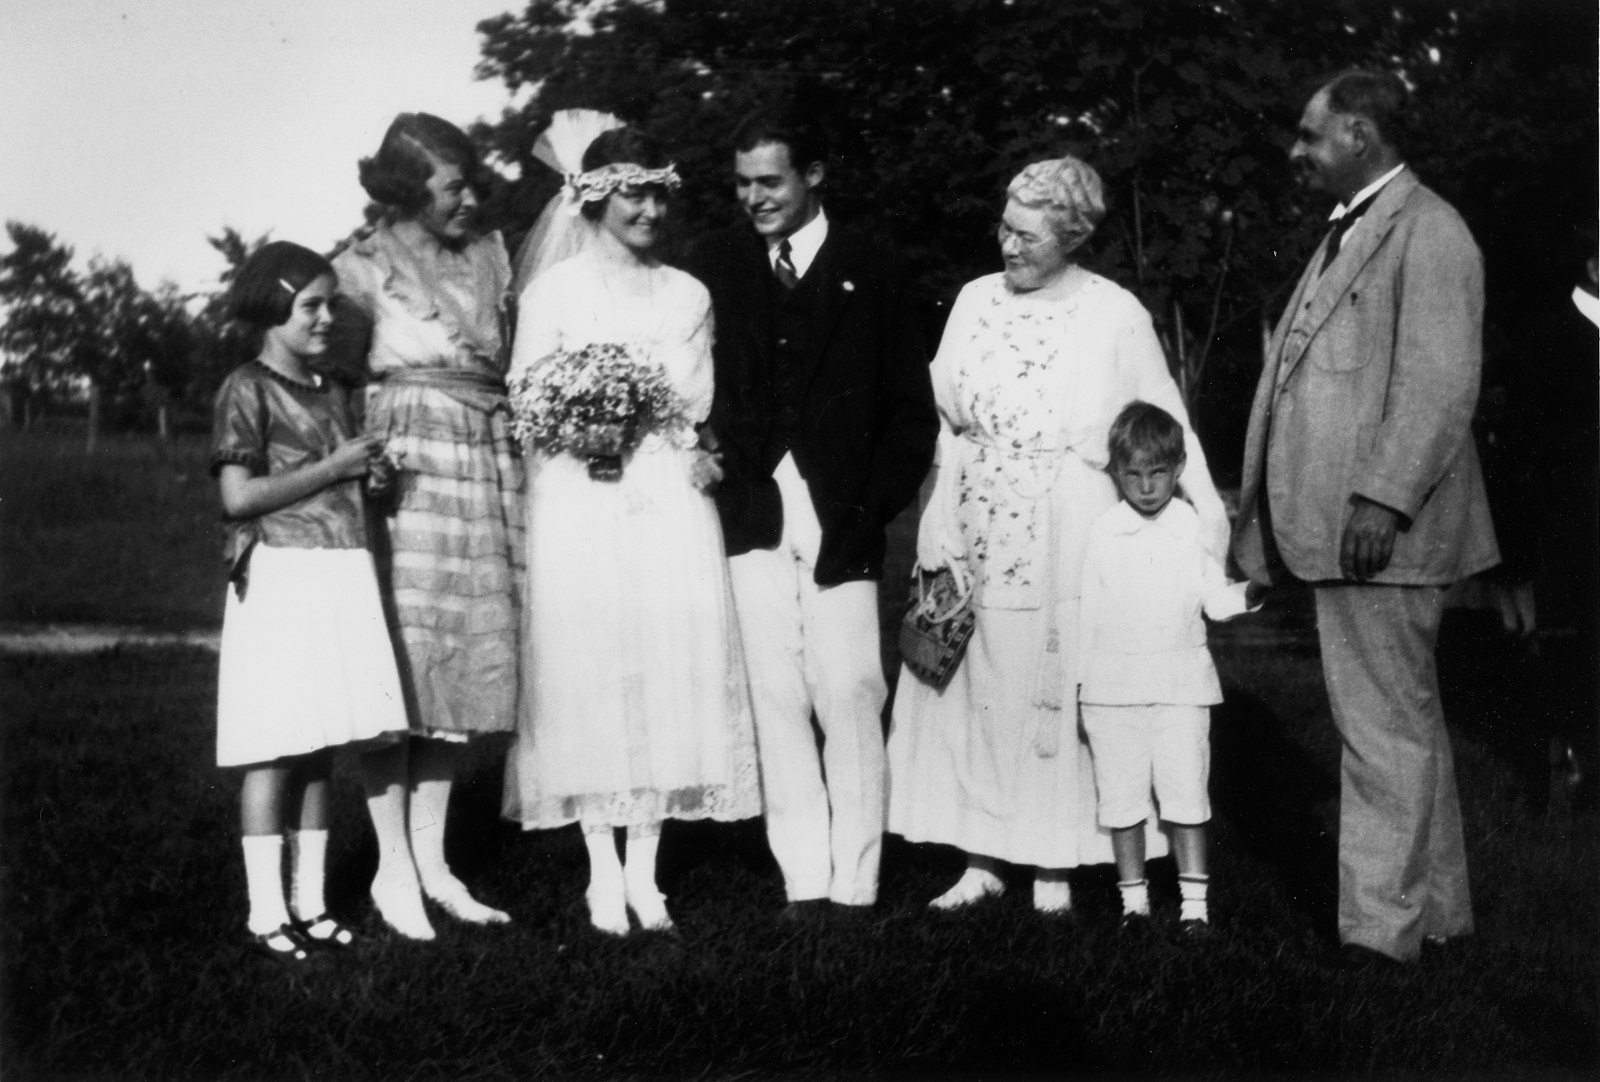 Black and white photo of a family at an old time wedding